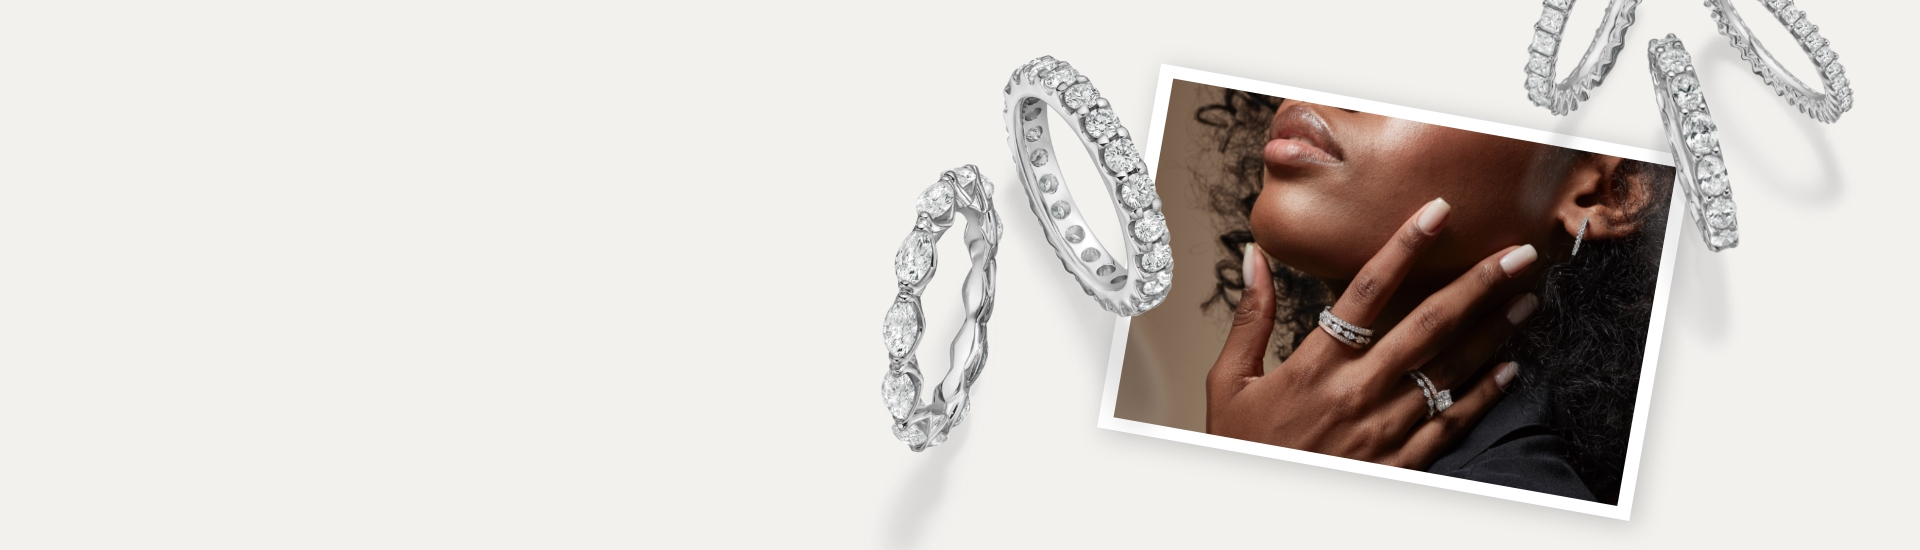 Woman wearing multiple eternity diamond rings on her fingers next to larger images of multi-cut diamond eternity rings set in white gold.